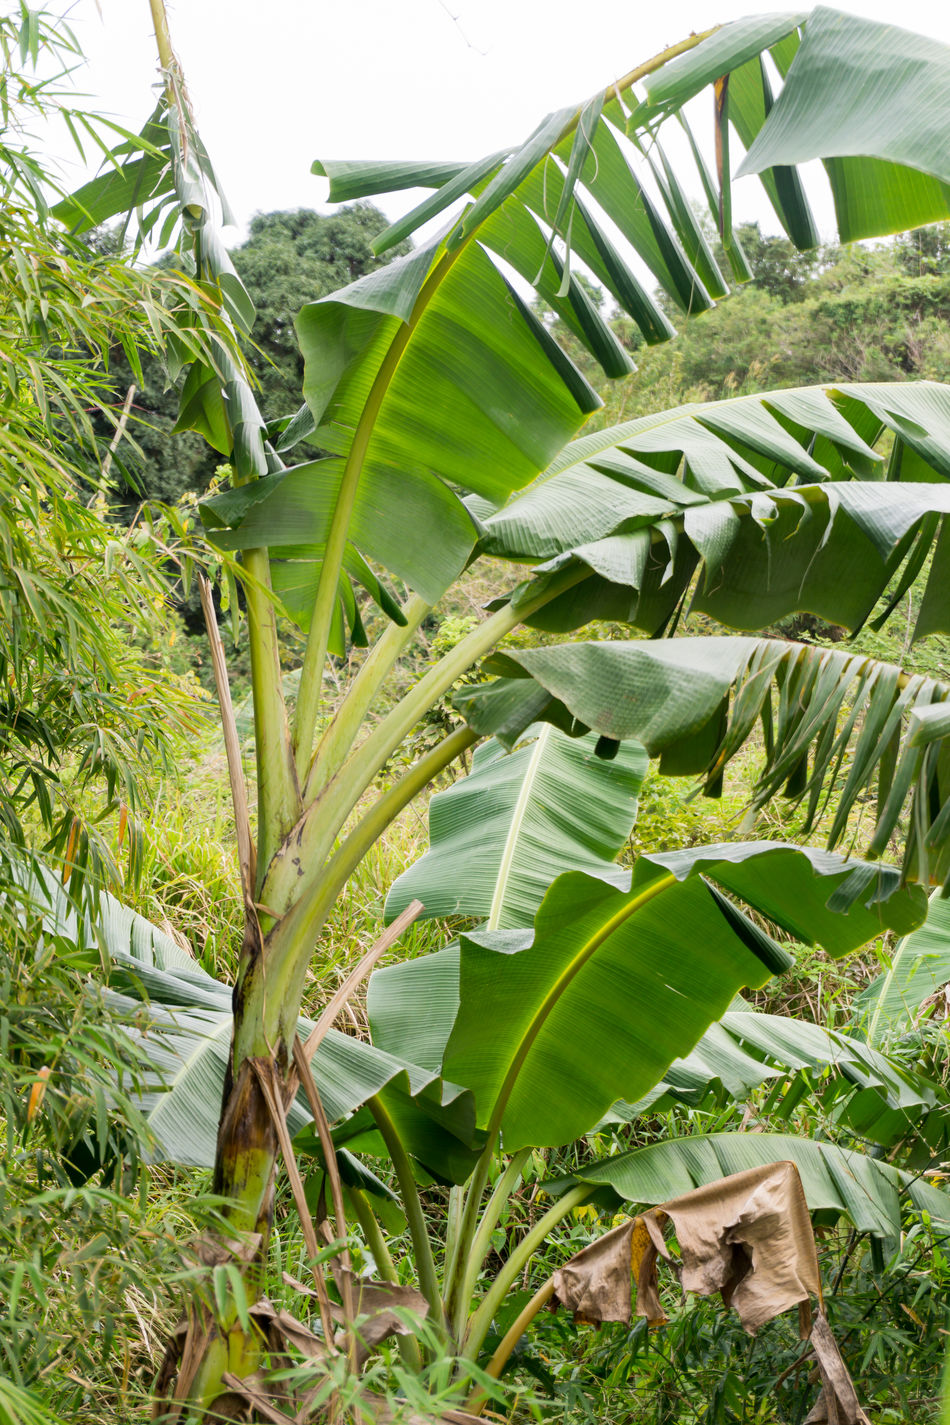 Tropical plants in the Philippines 2017 Daytime Green Leaves. Outdoor Photography Outdoors Outside Rural Scene Tree Tropical Climate Tropical Plants